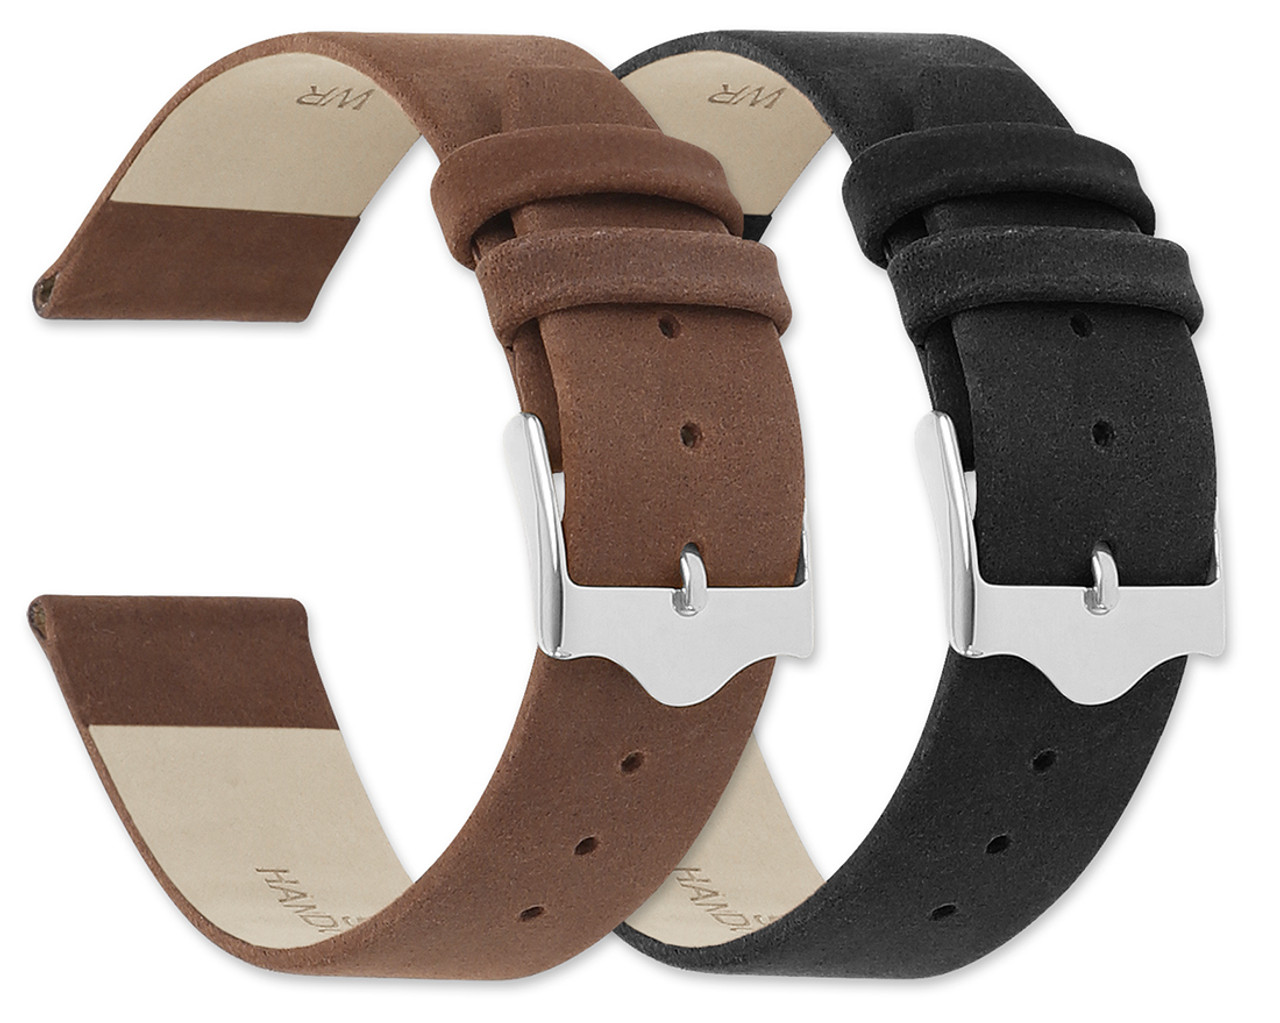 c6f2c1379a7 suede leather replacement watch band